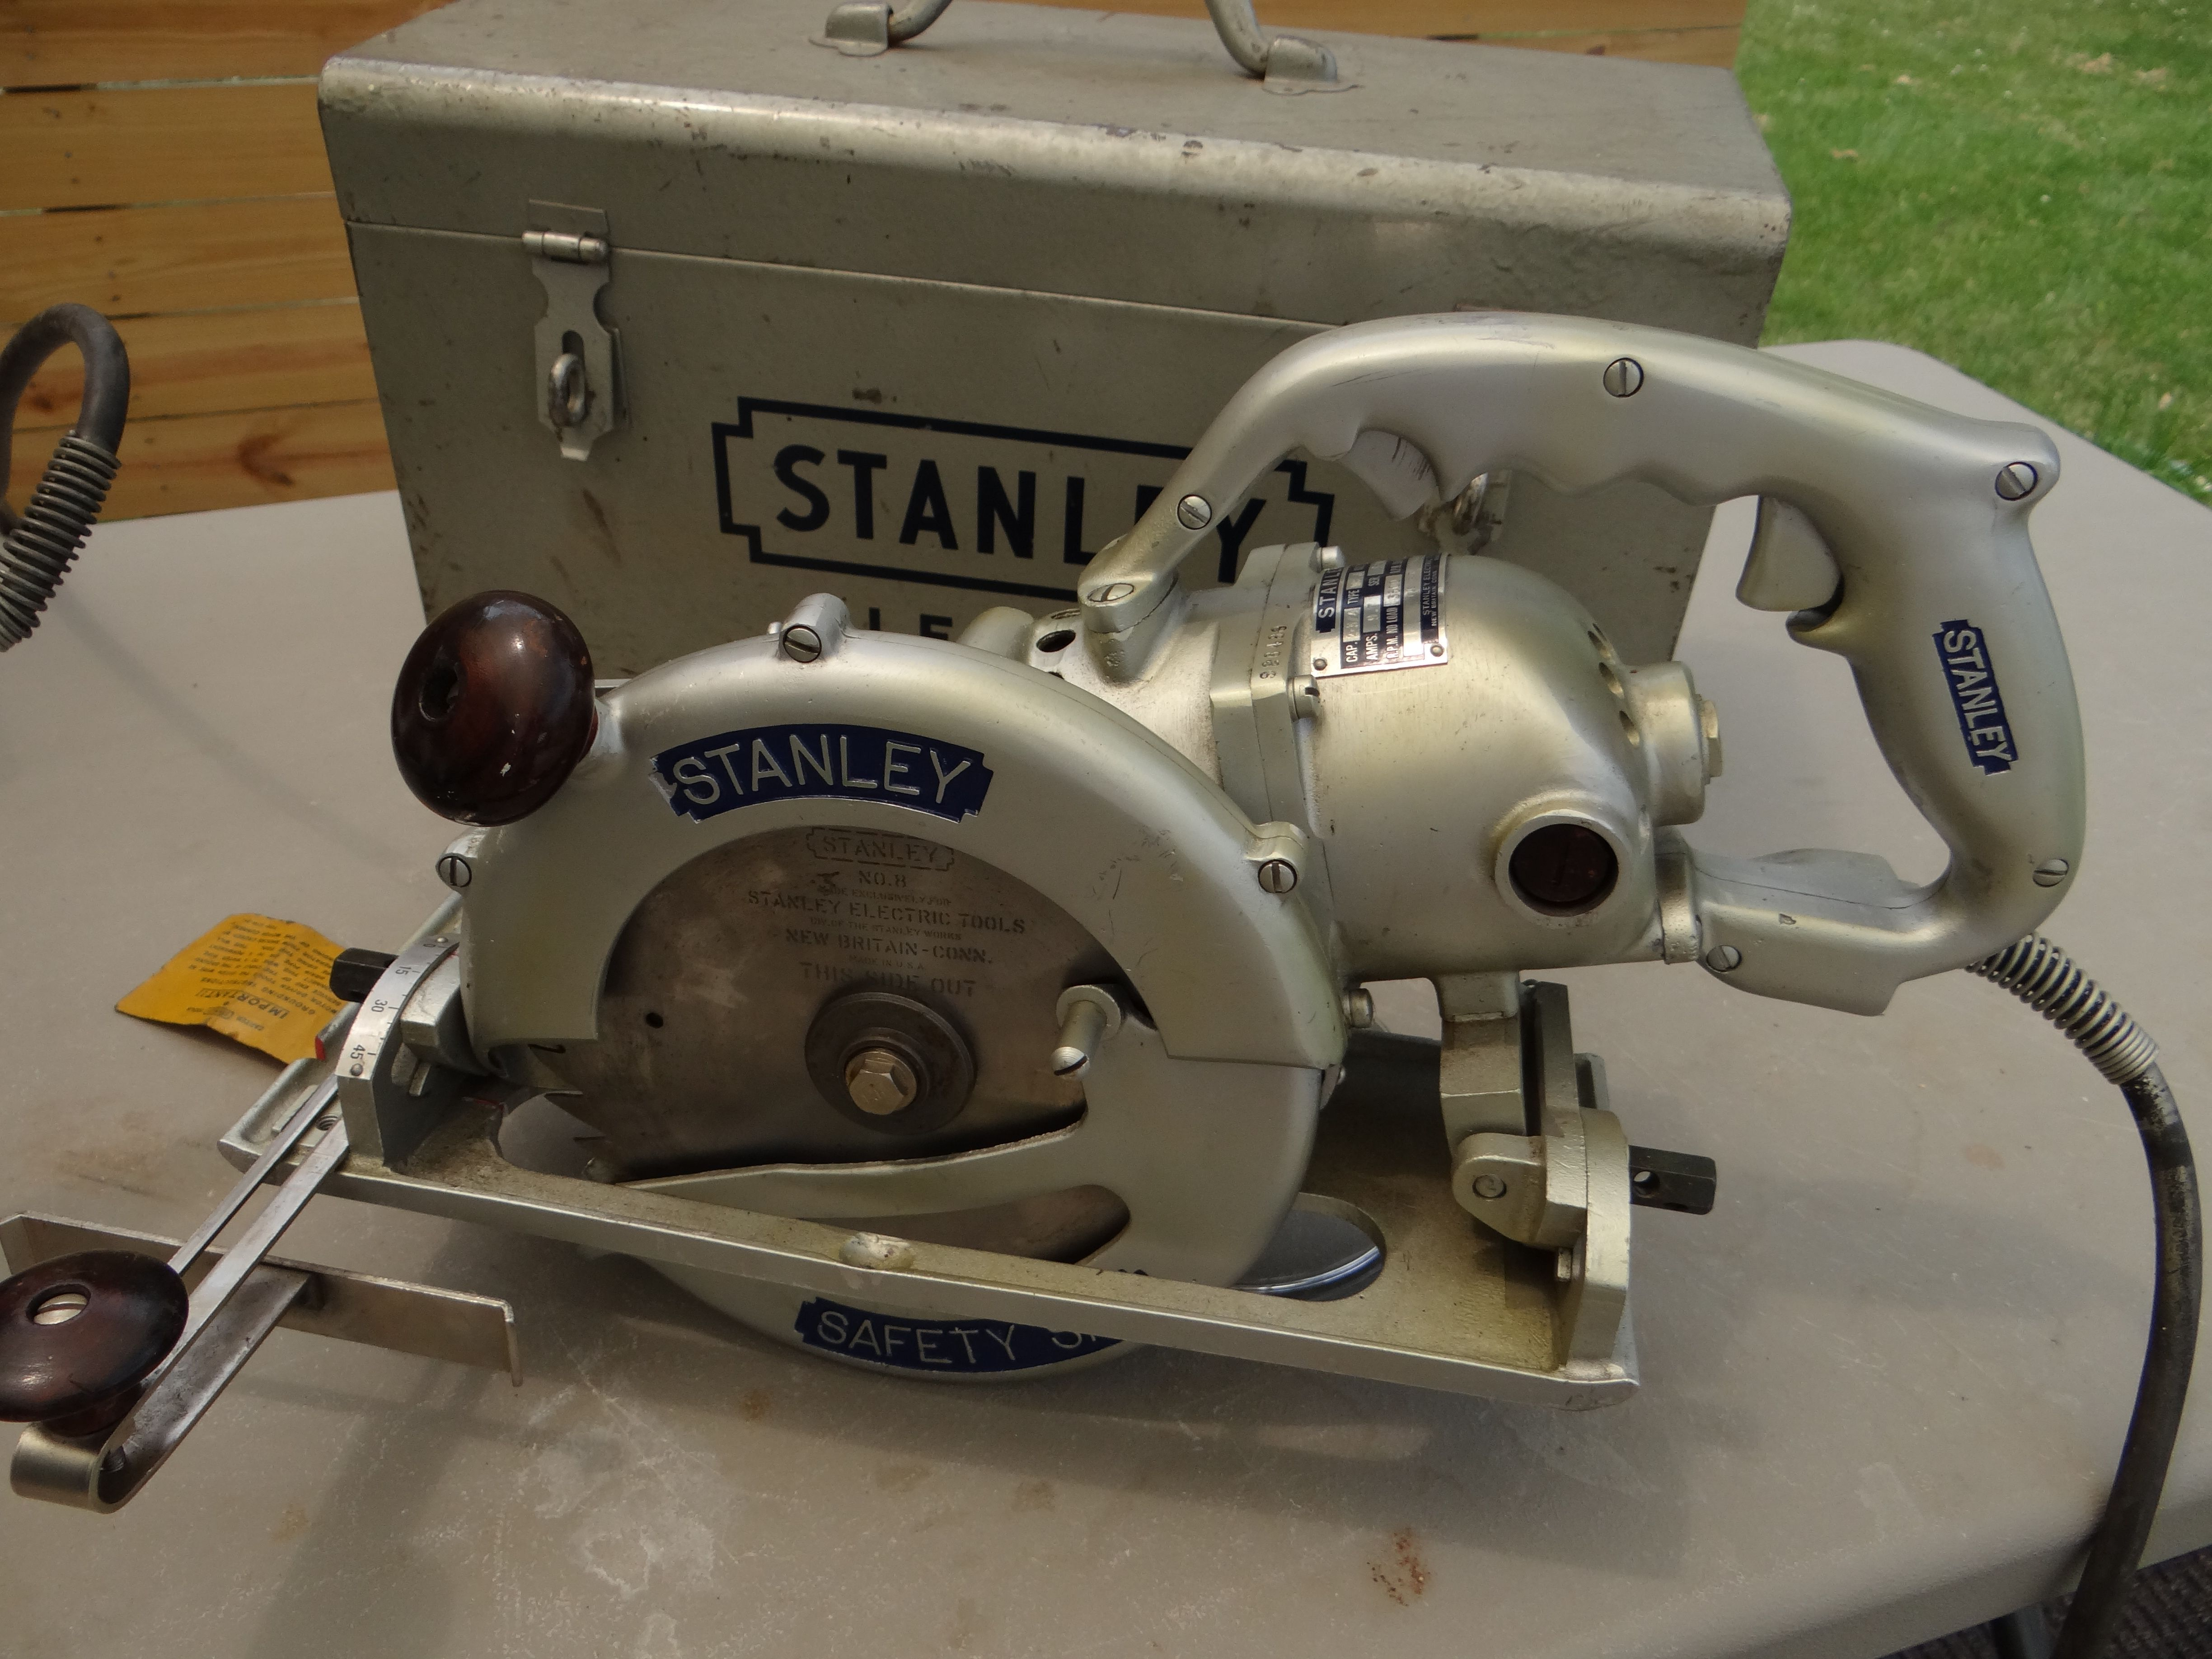 1950 stanley w8safety saw circular saw cool tools power saw vintage antiques  [ 4896 x 3672 Pixel ]